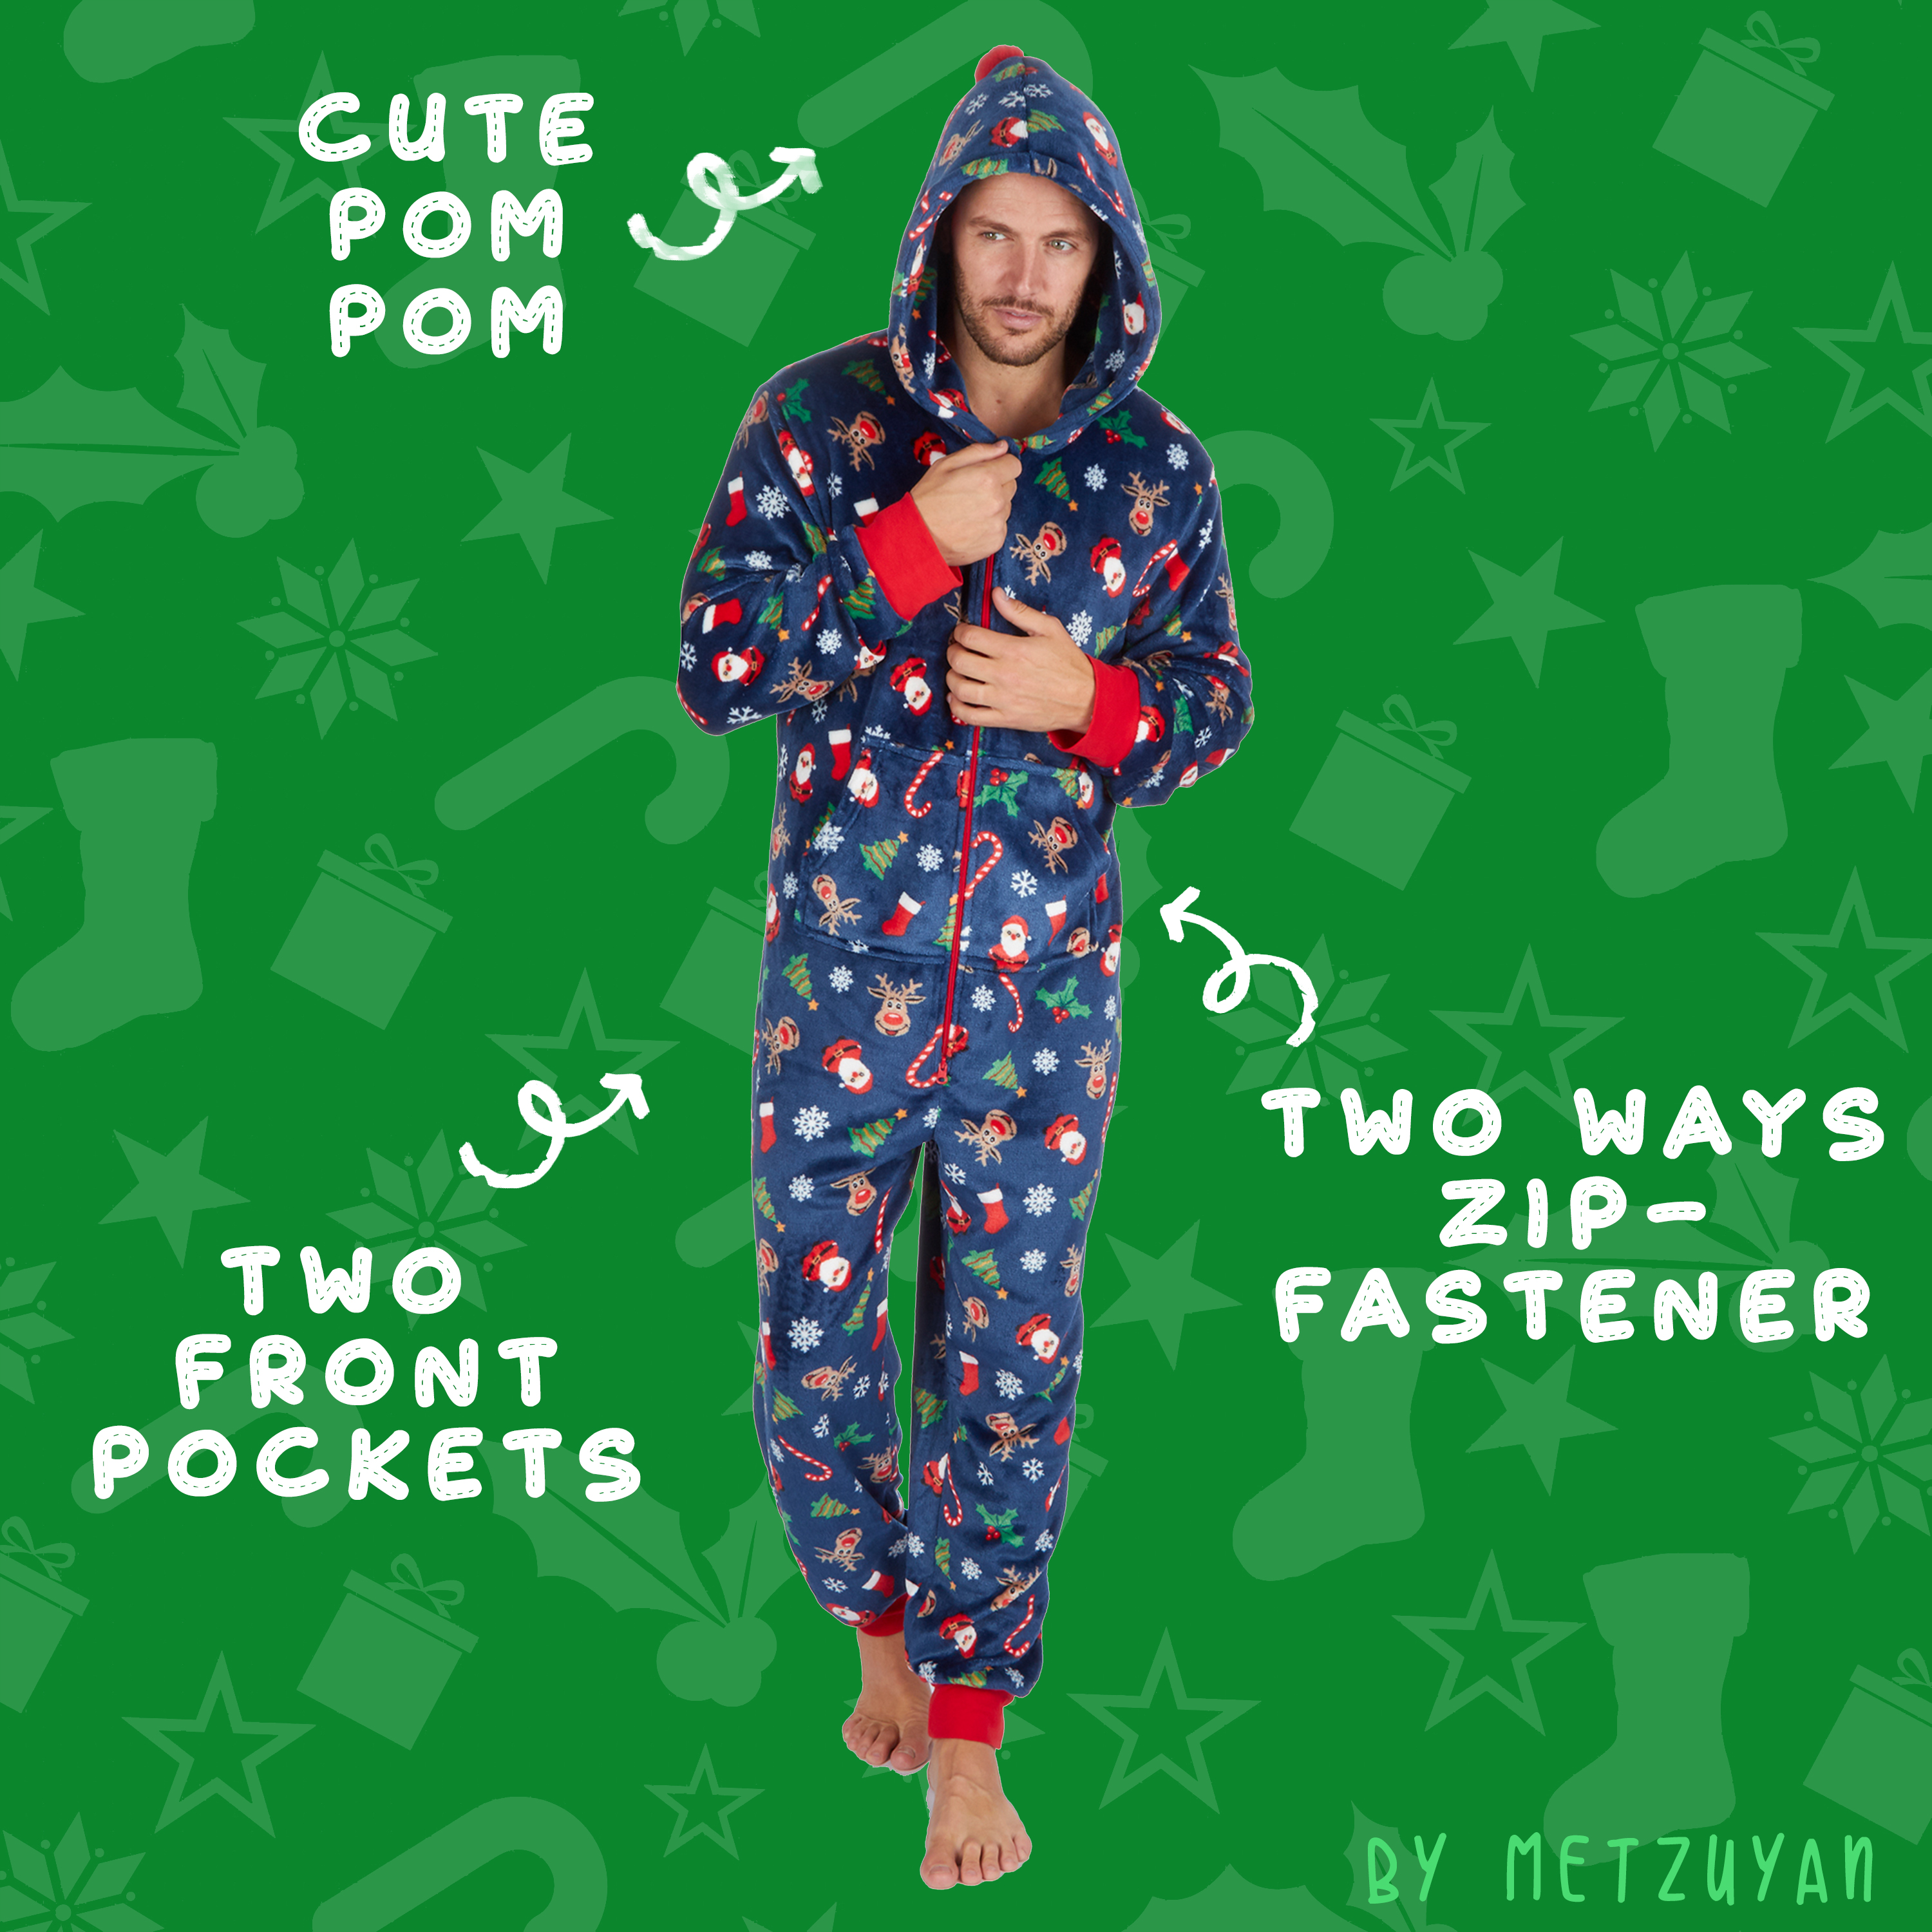 Metzuyan Mens Xmas Jumpsuit All in One Piece Christmas Novelty Hooded Festive Onezee XS S M L XL